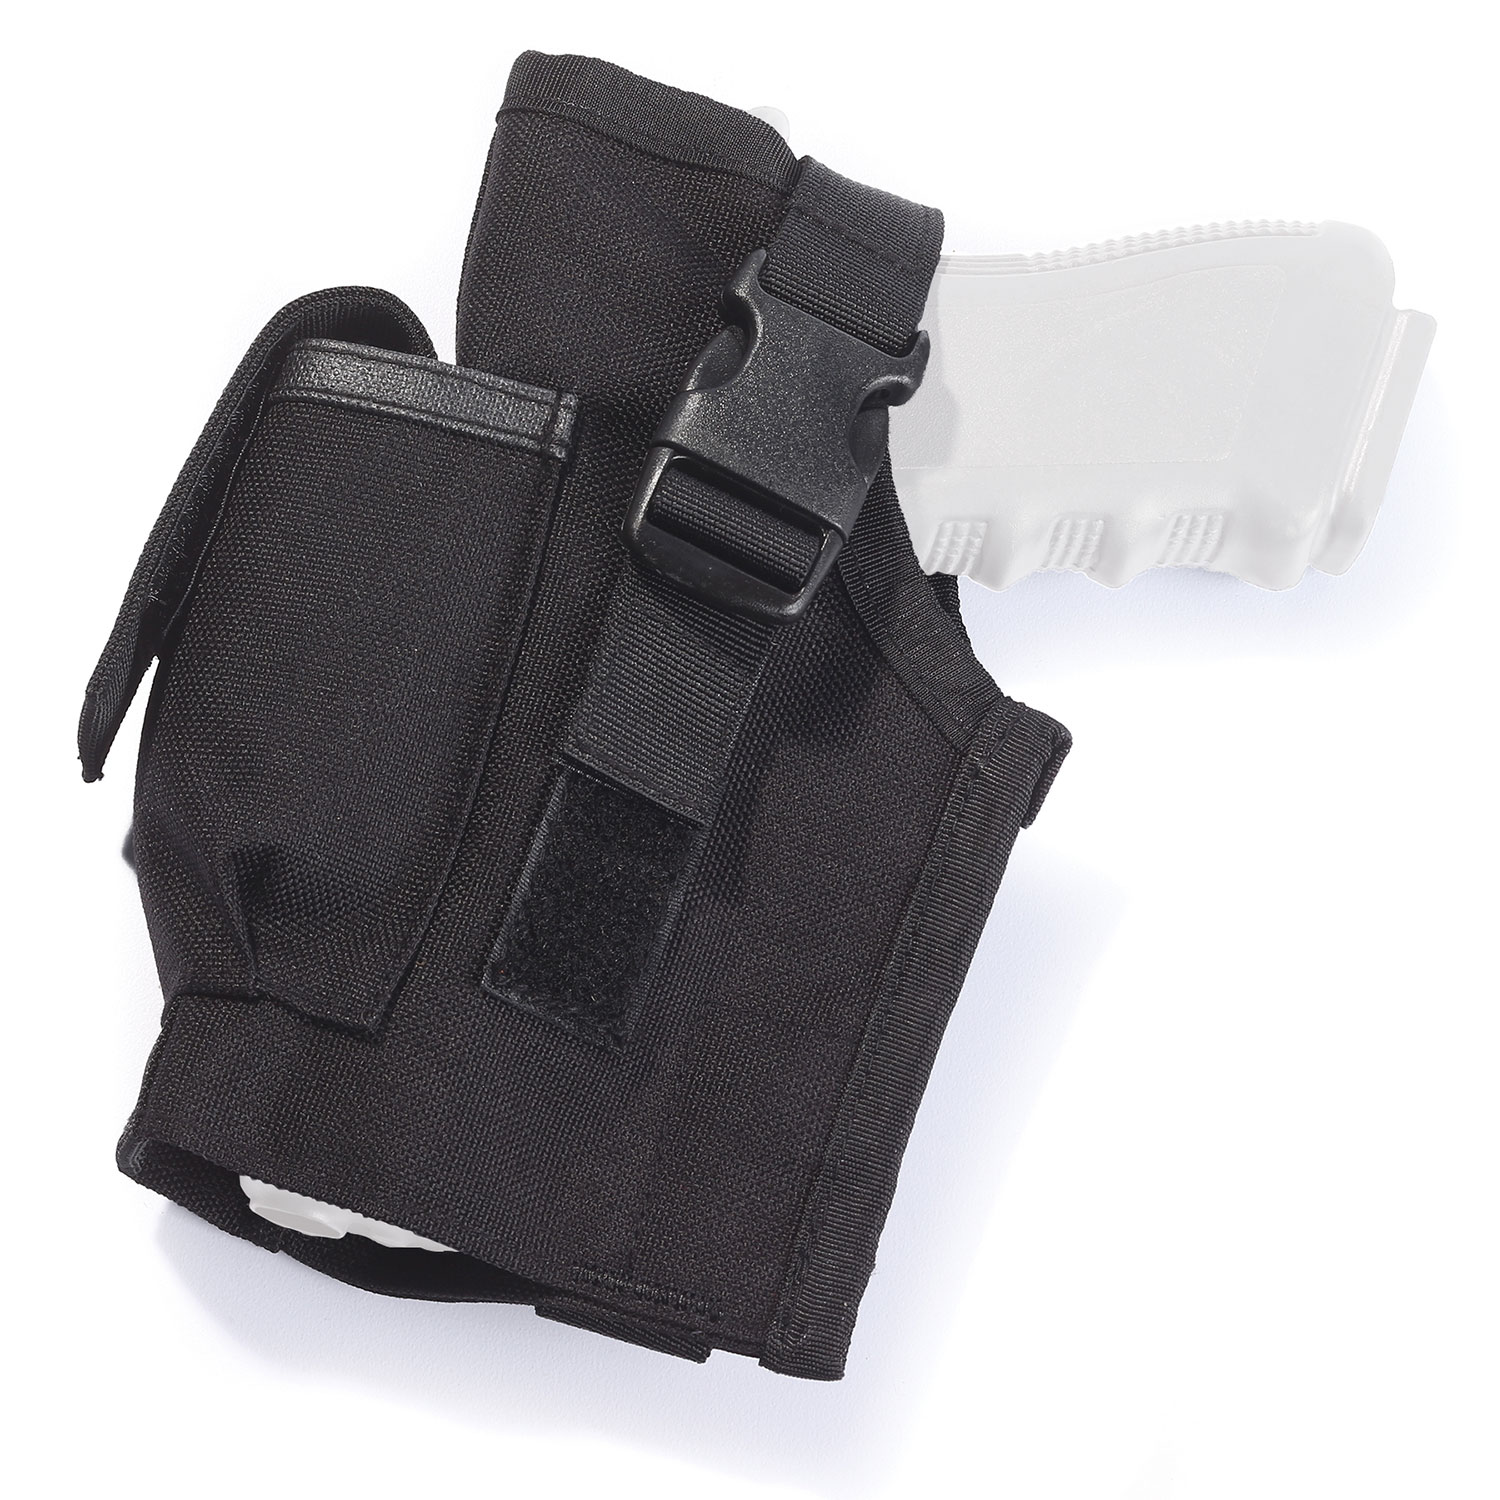 Galls MOLLE Crossdraw Holster